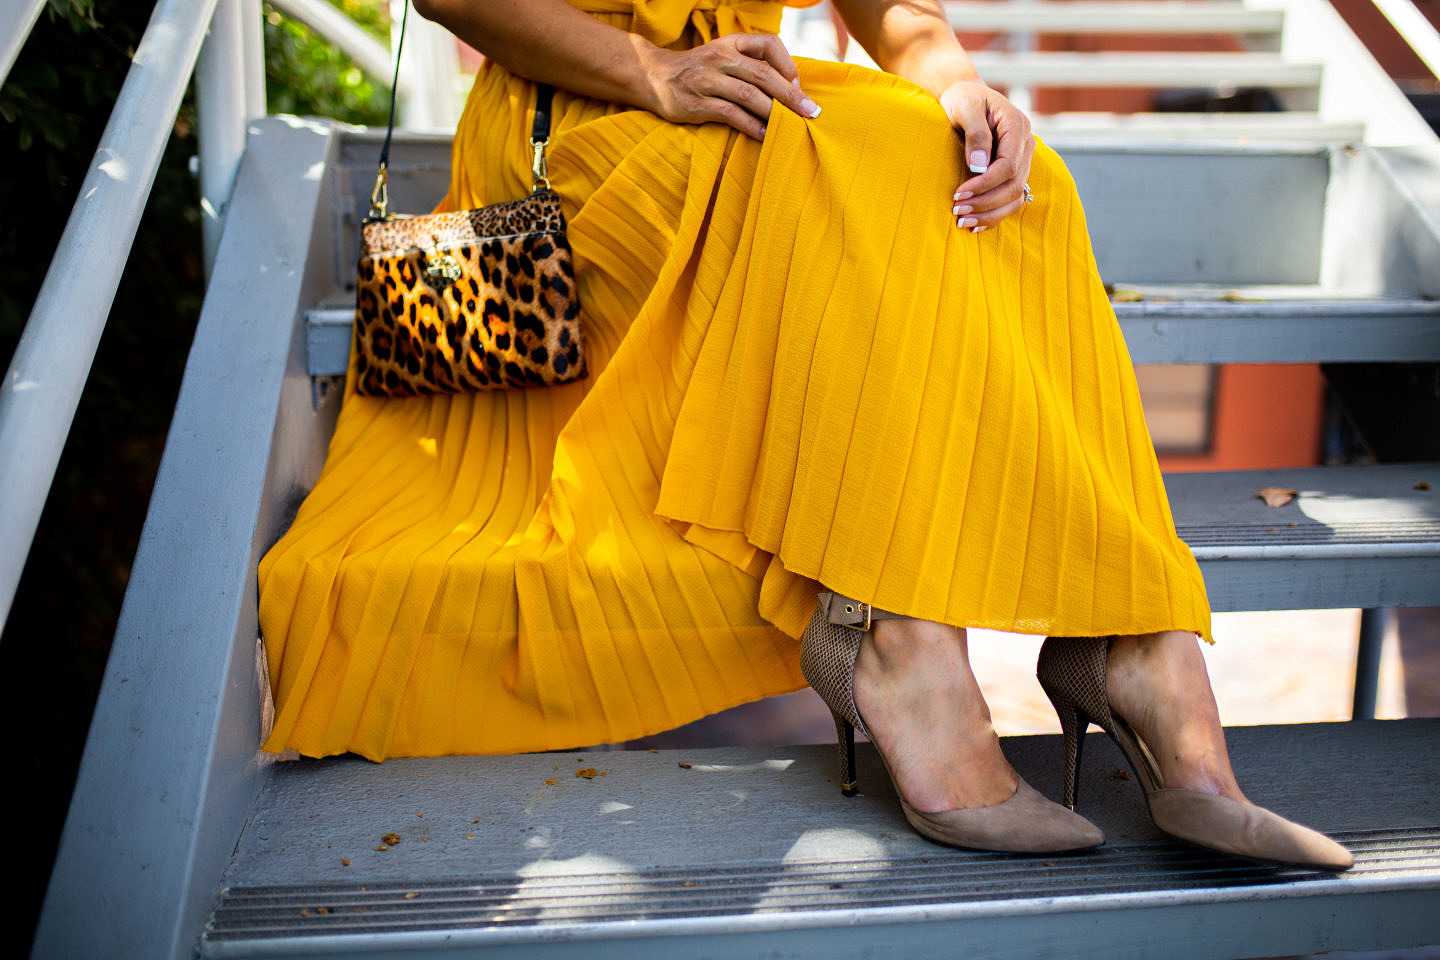 Bookmark this post ASAP if you have wanted to style a yellow pleated dress this holiday season! Keep reading as Orange County Blogger Debbie Savage share her favorite way to style a yellow pleated dress like a pro.